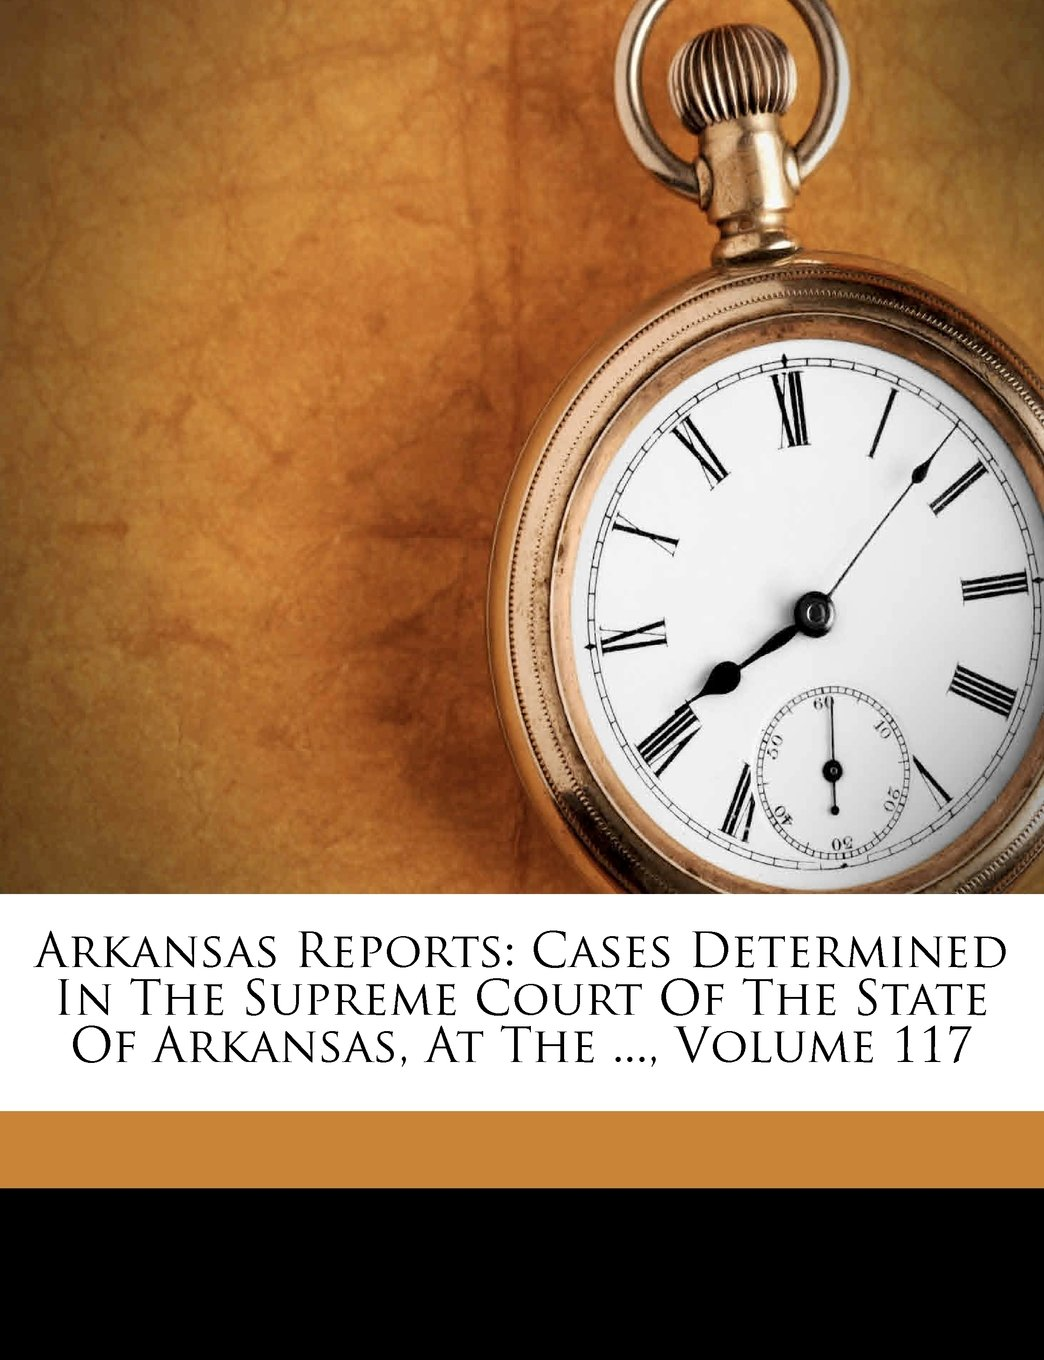 Arkansas Reports: Cases Determined In The Supreme Court Of The State Of Arkansas, At The ..., Volume 117 PDF